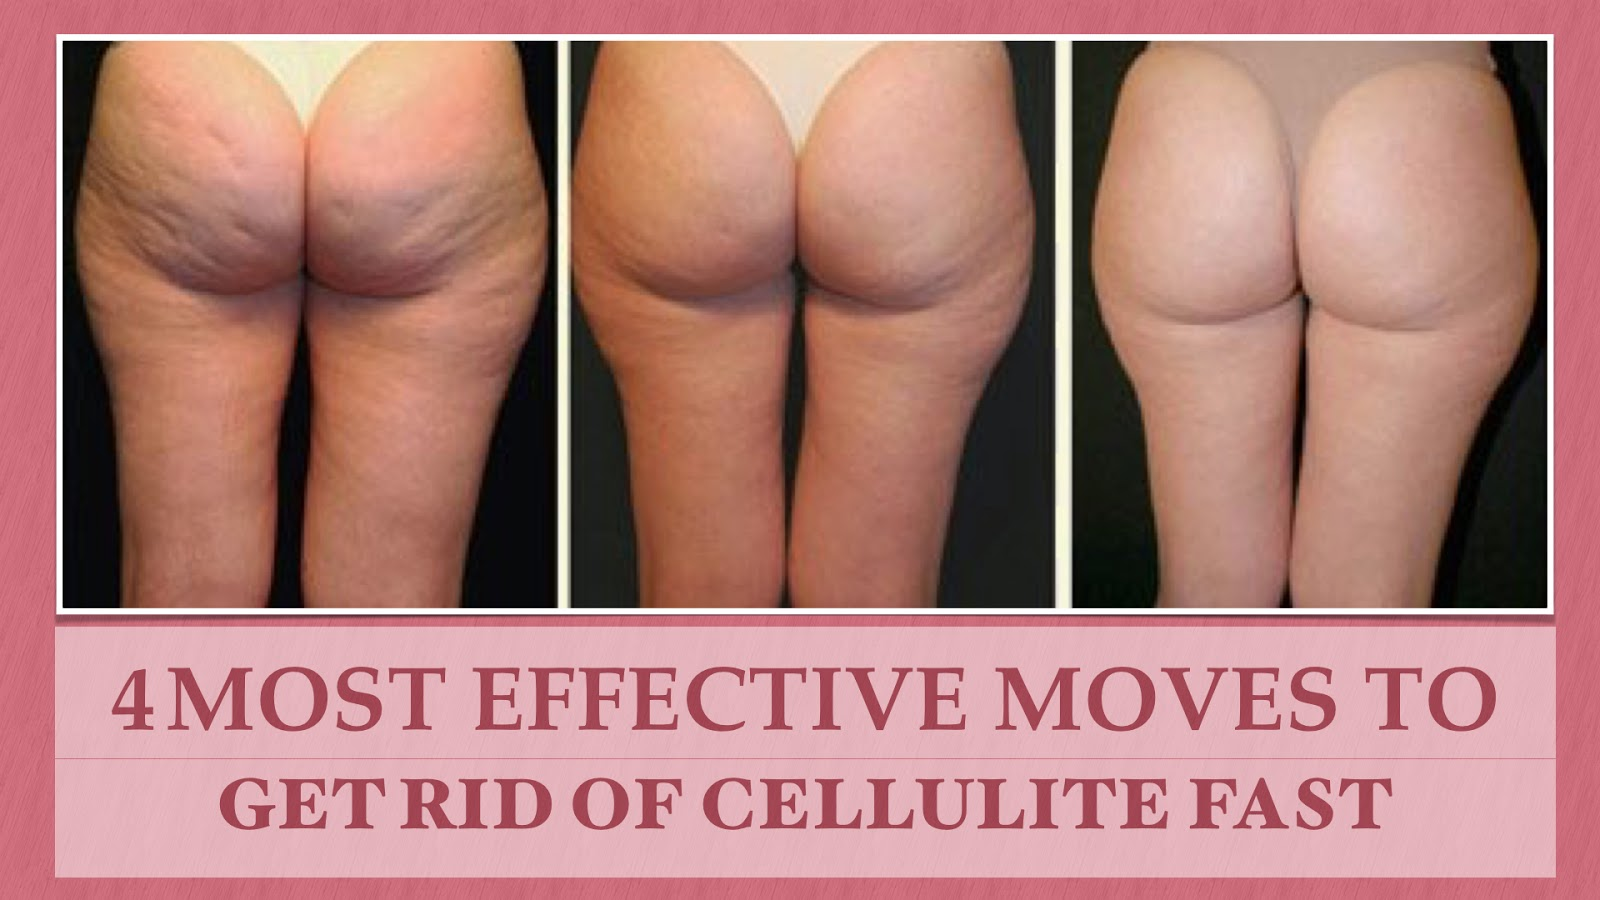 Some Cellulite Treatments - Best Real Cellulite Treatments ...